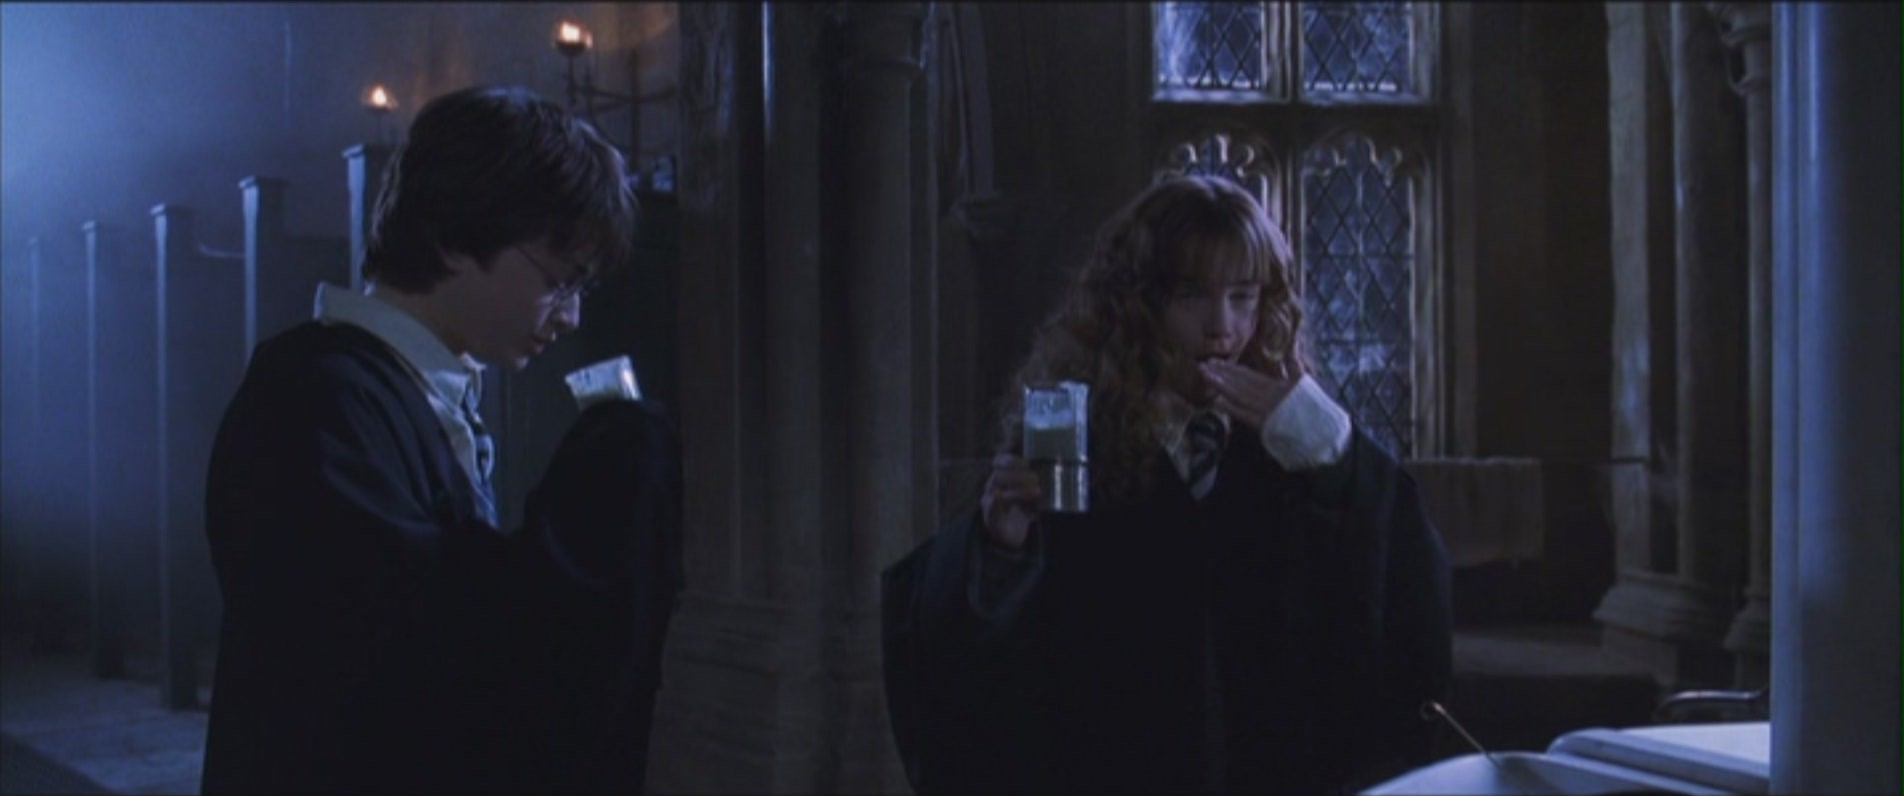 Harmony - Chamber of Secrets - Harry and Hermione Image ...